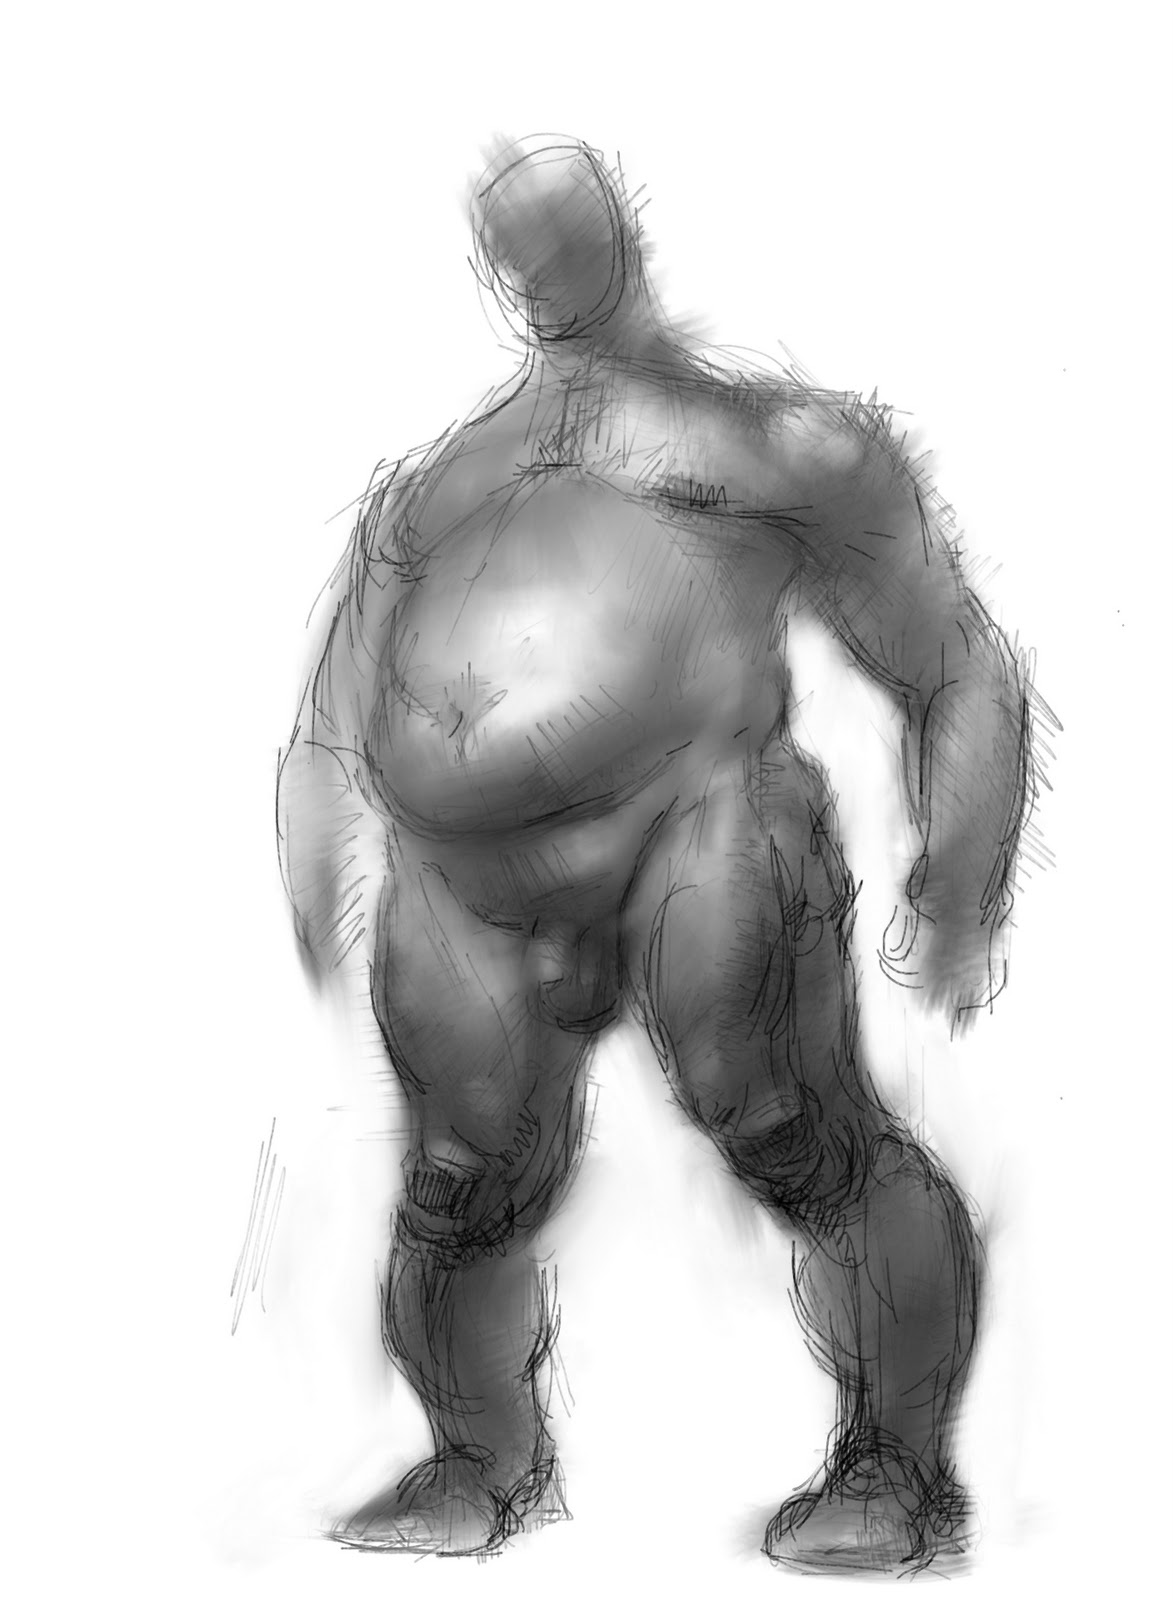 digital playpen: big fat naked guy i've been drawing on the subway